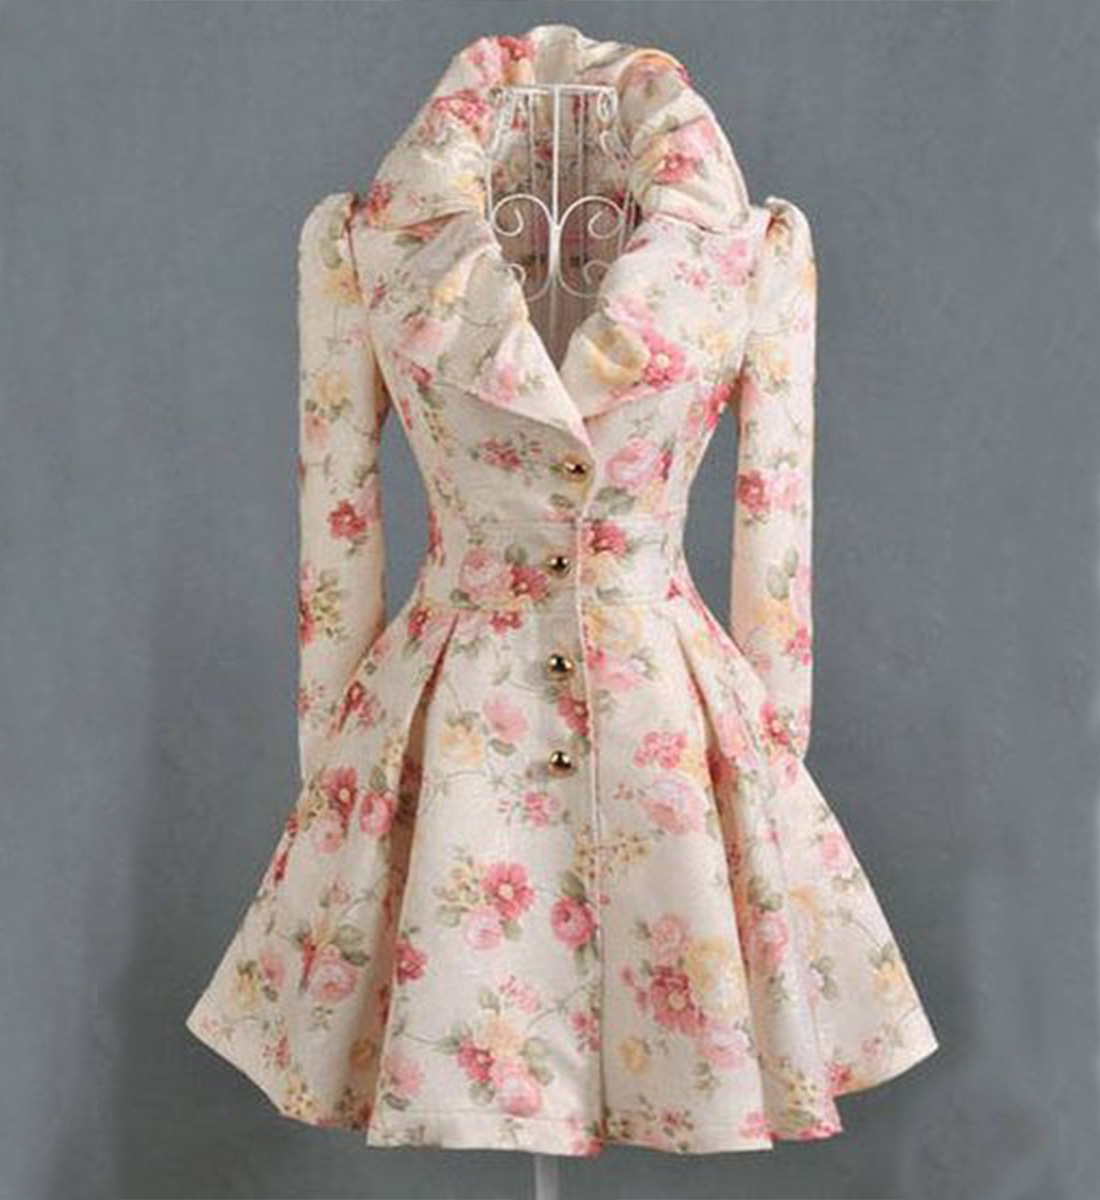 Peach Trench Coats-Printed Flower Coats for Women-Fashion Long Skirted Coats-Pink Floral Overcoats